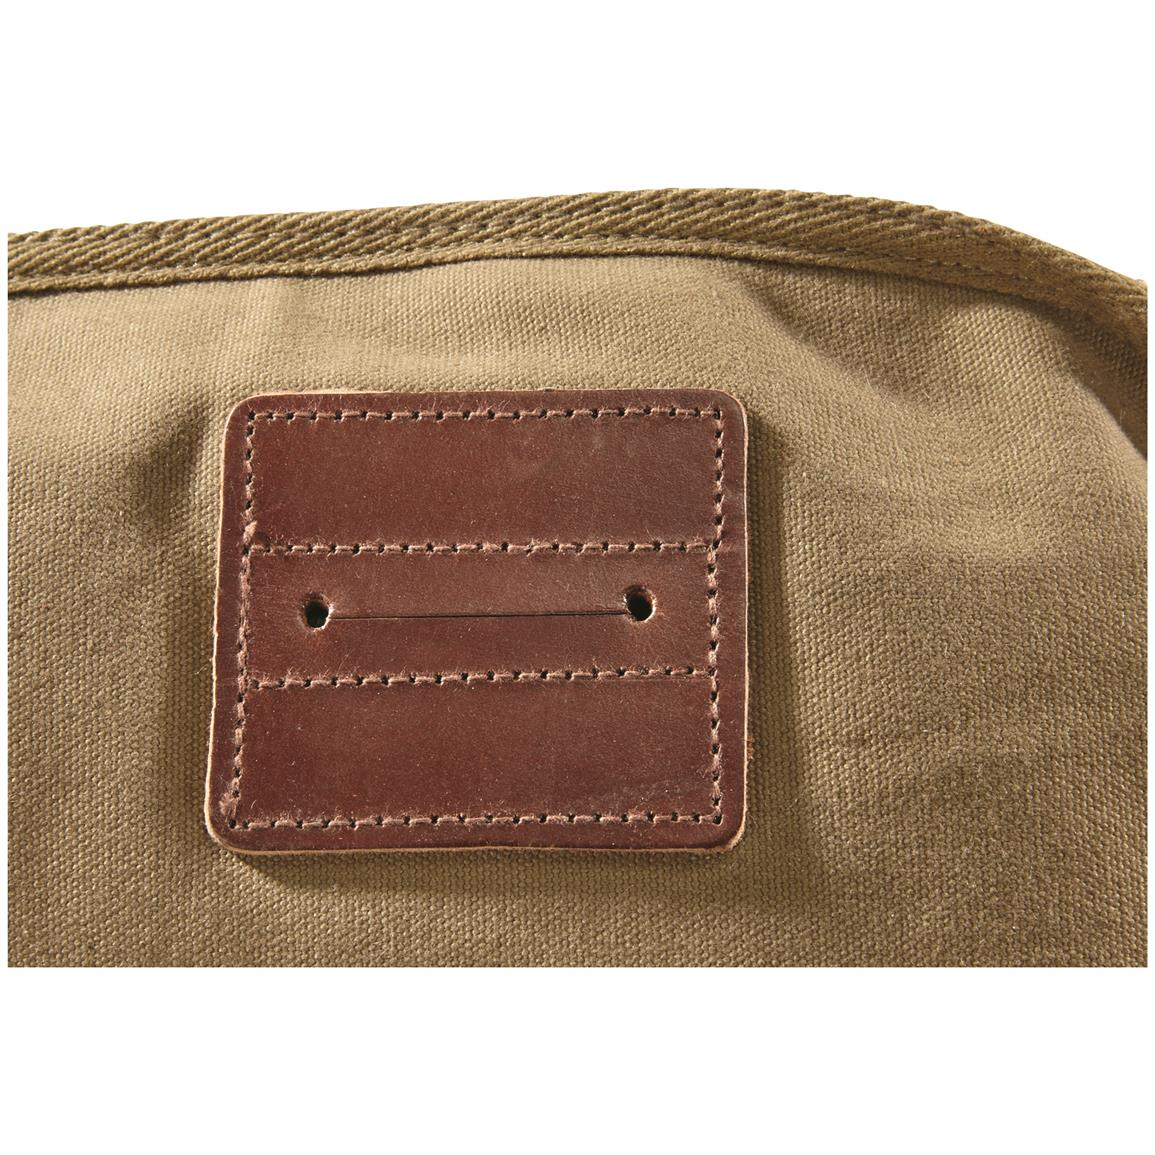 Leather patches with slits in back